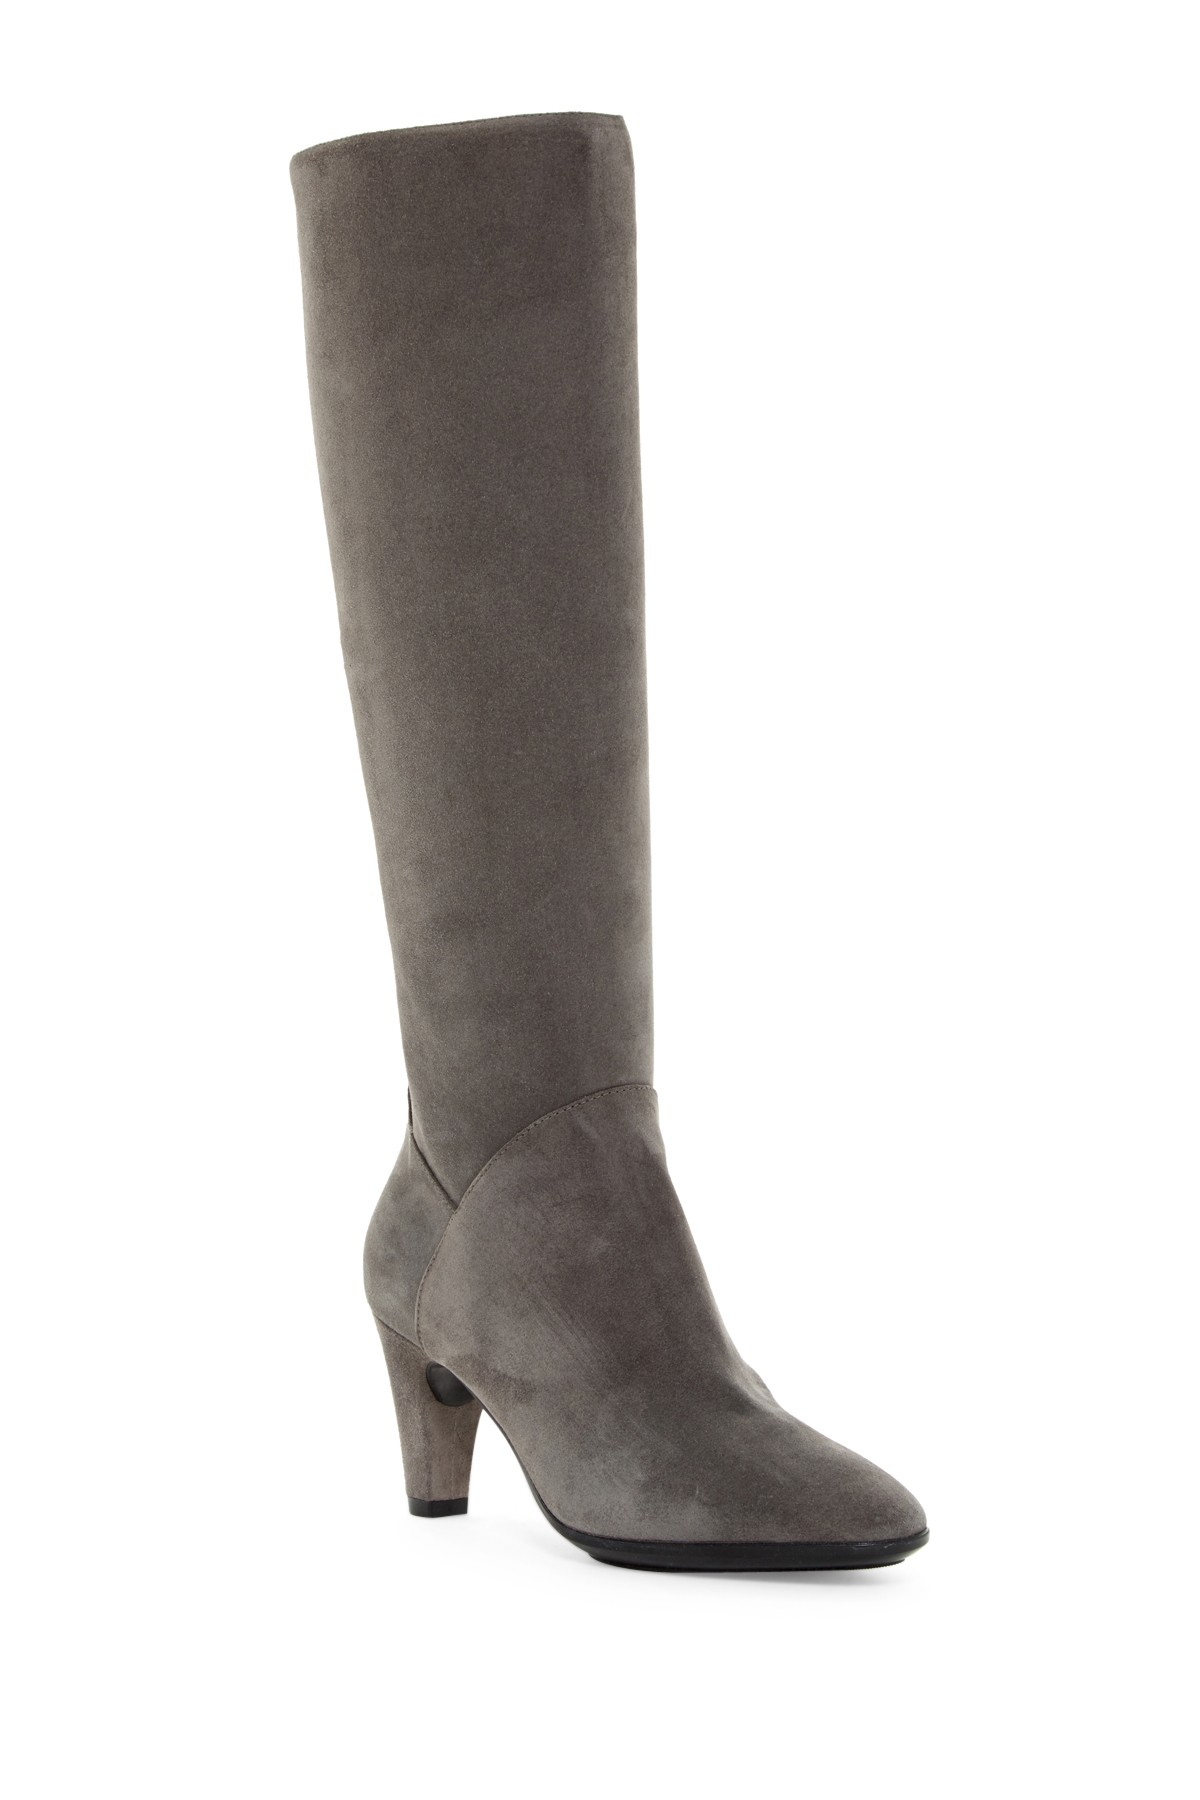 Lyst Aquatalia Danica Weatherproof Tall Boot In Gray